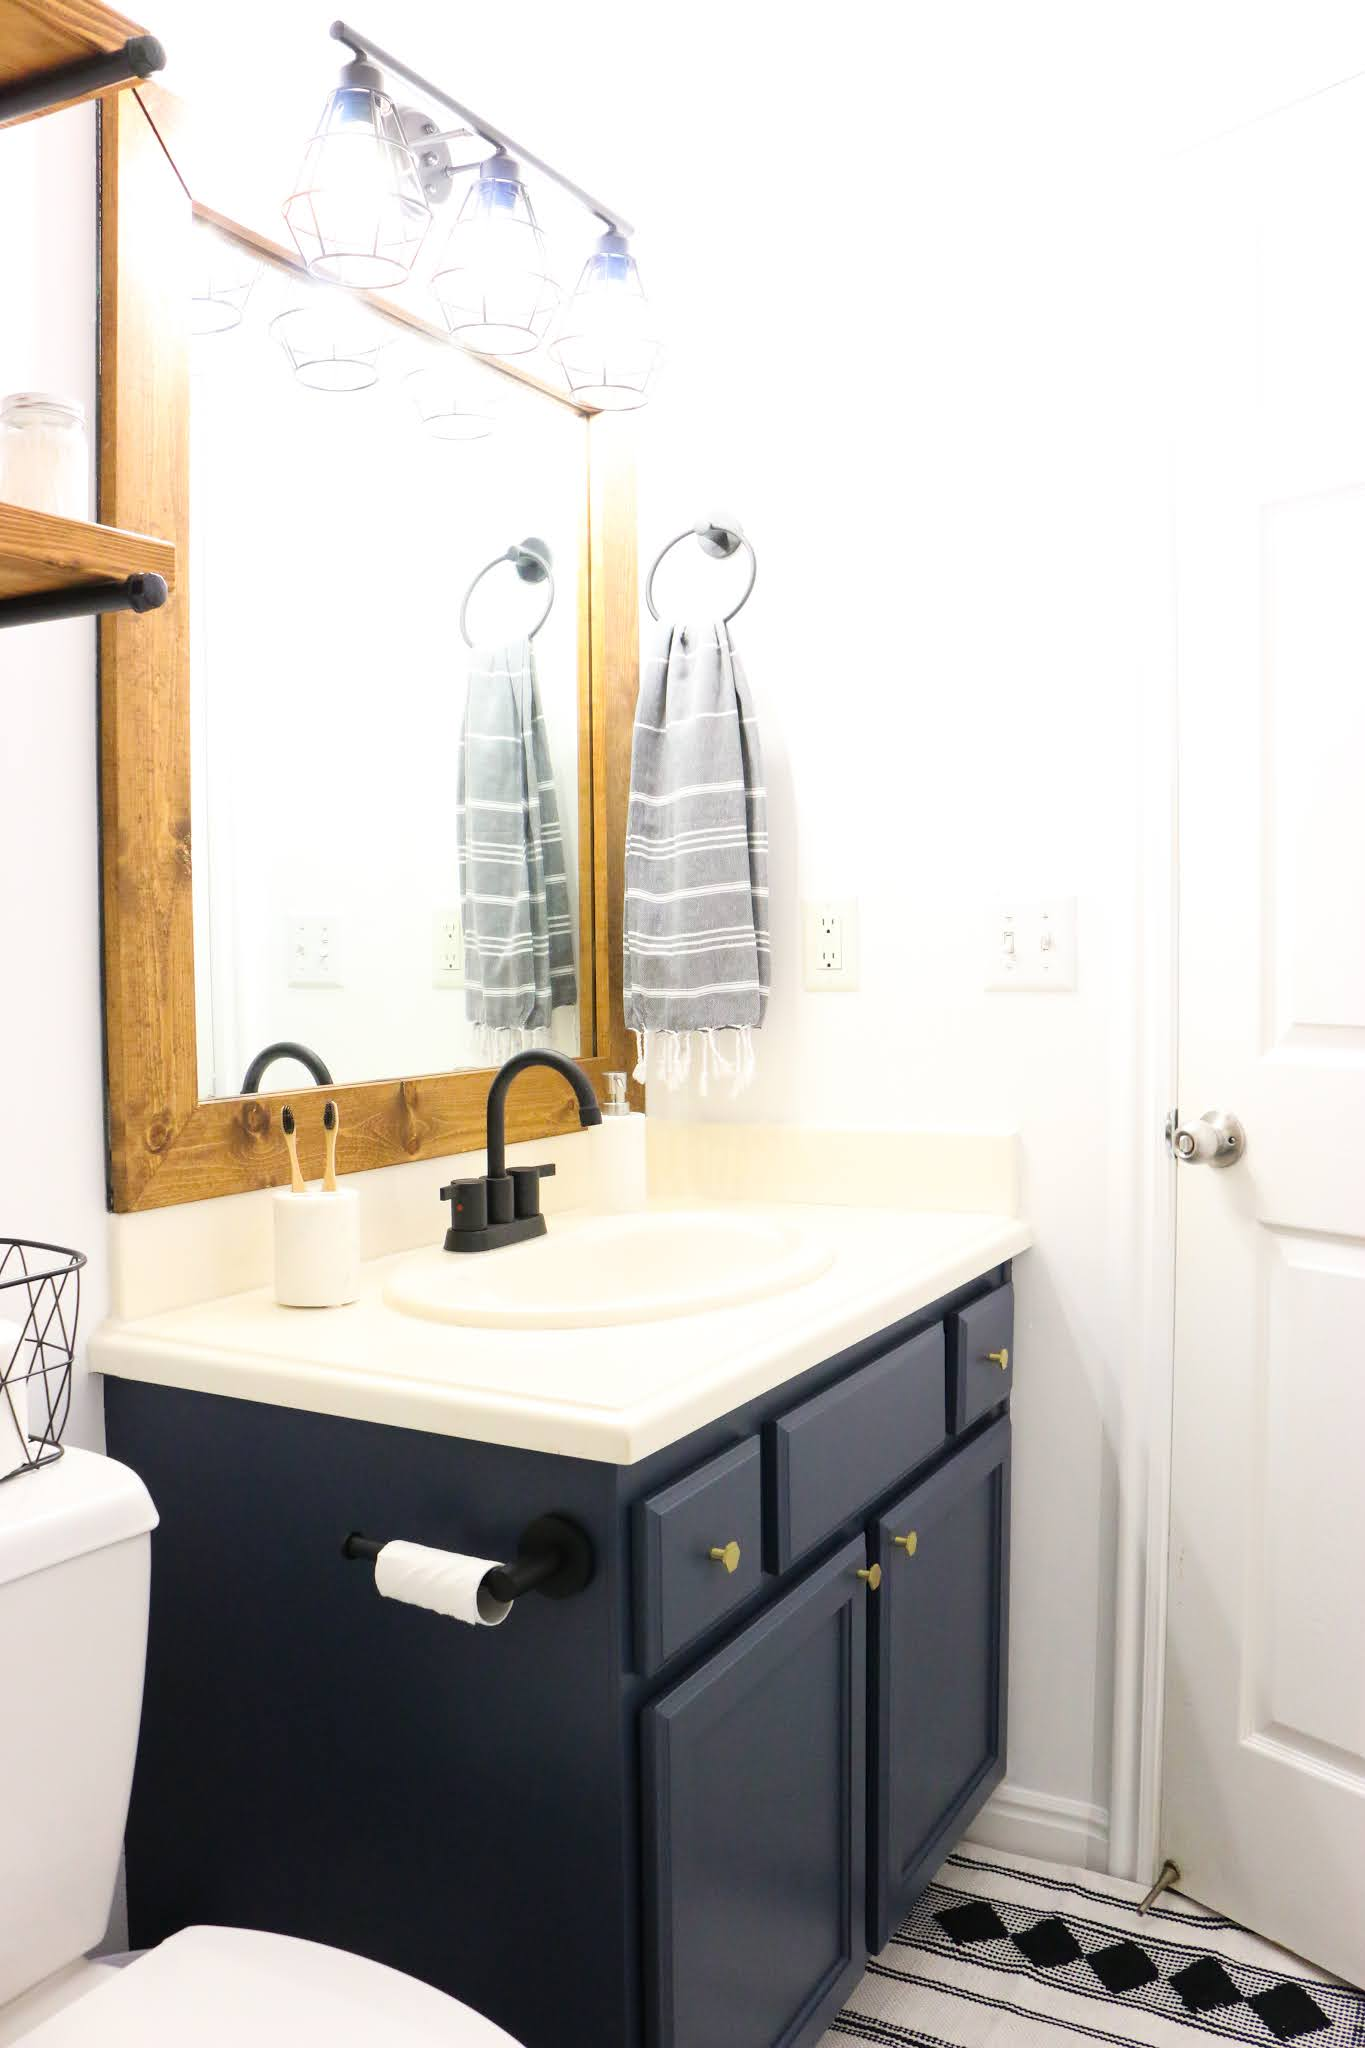 How to paint bathroom cabinets. How to paint bathroom cabinets without sanding. Best paint for bathroom cabinets. Best paint for bathroom cabinets. Waterproof paint for bathroom cabinets. How to seal painted bathroom cabinets. #diy #Home #Bathroom #remodel #Paint #cabinets